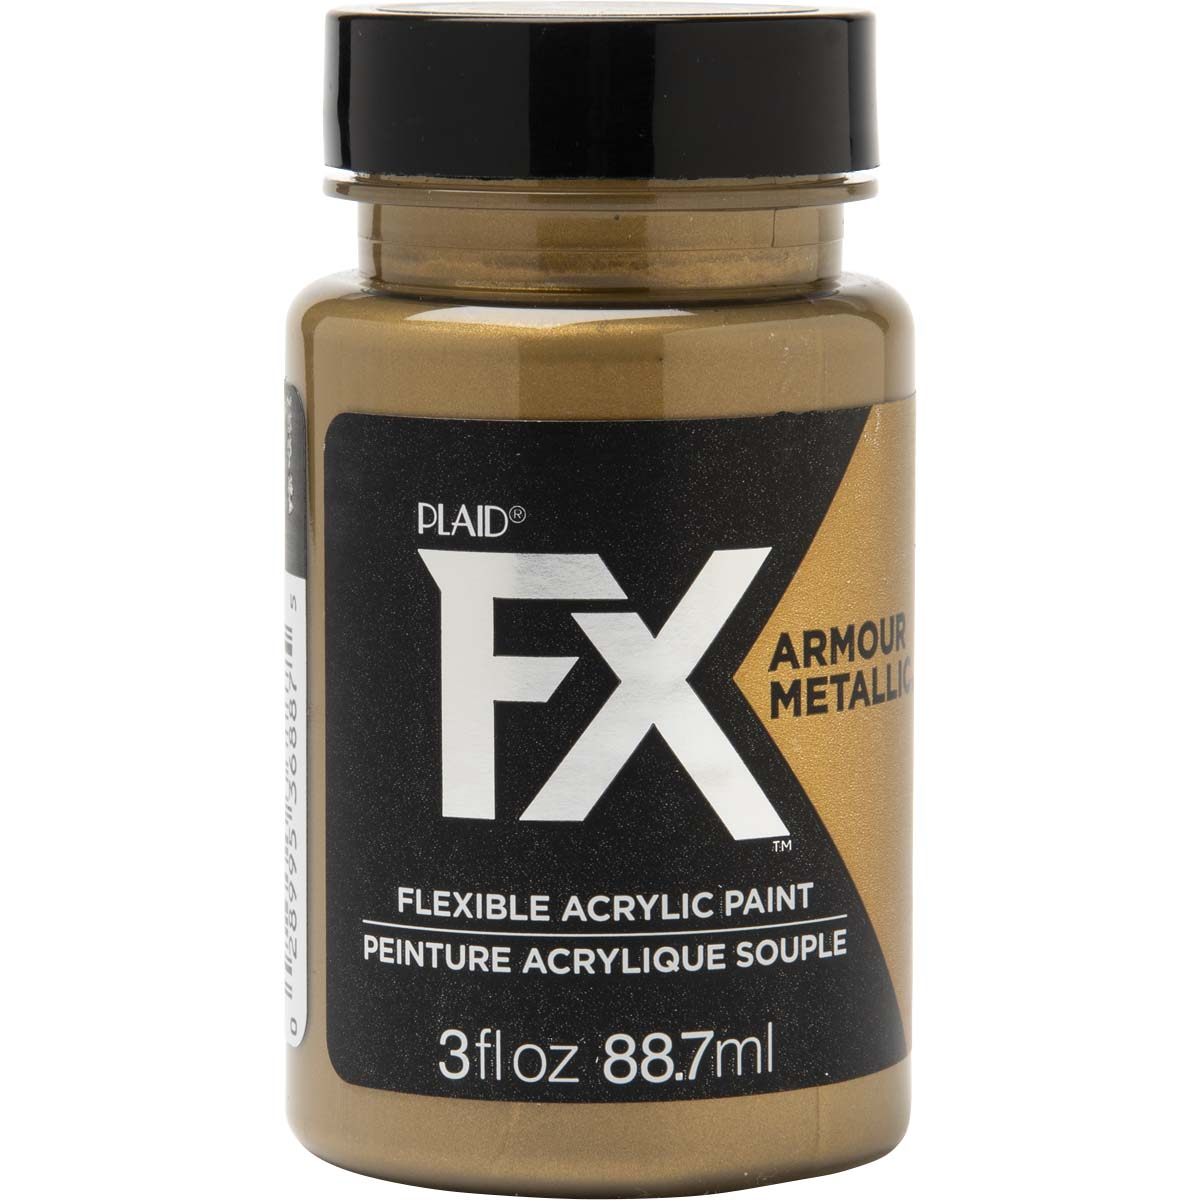 PlaidFX Armour Metal Flexible Acrylic Paint - Gold Coin, 3 oz. - 36887